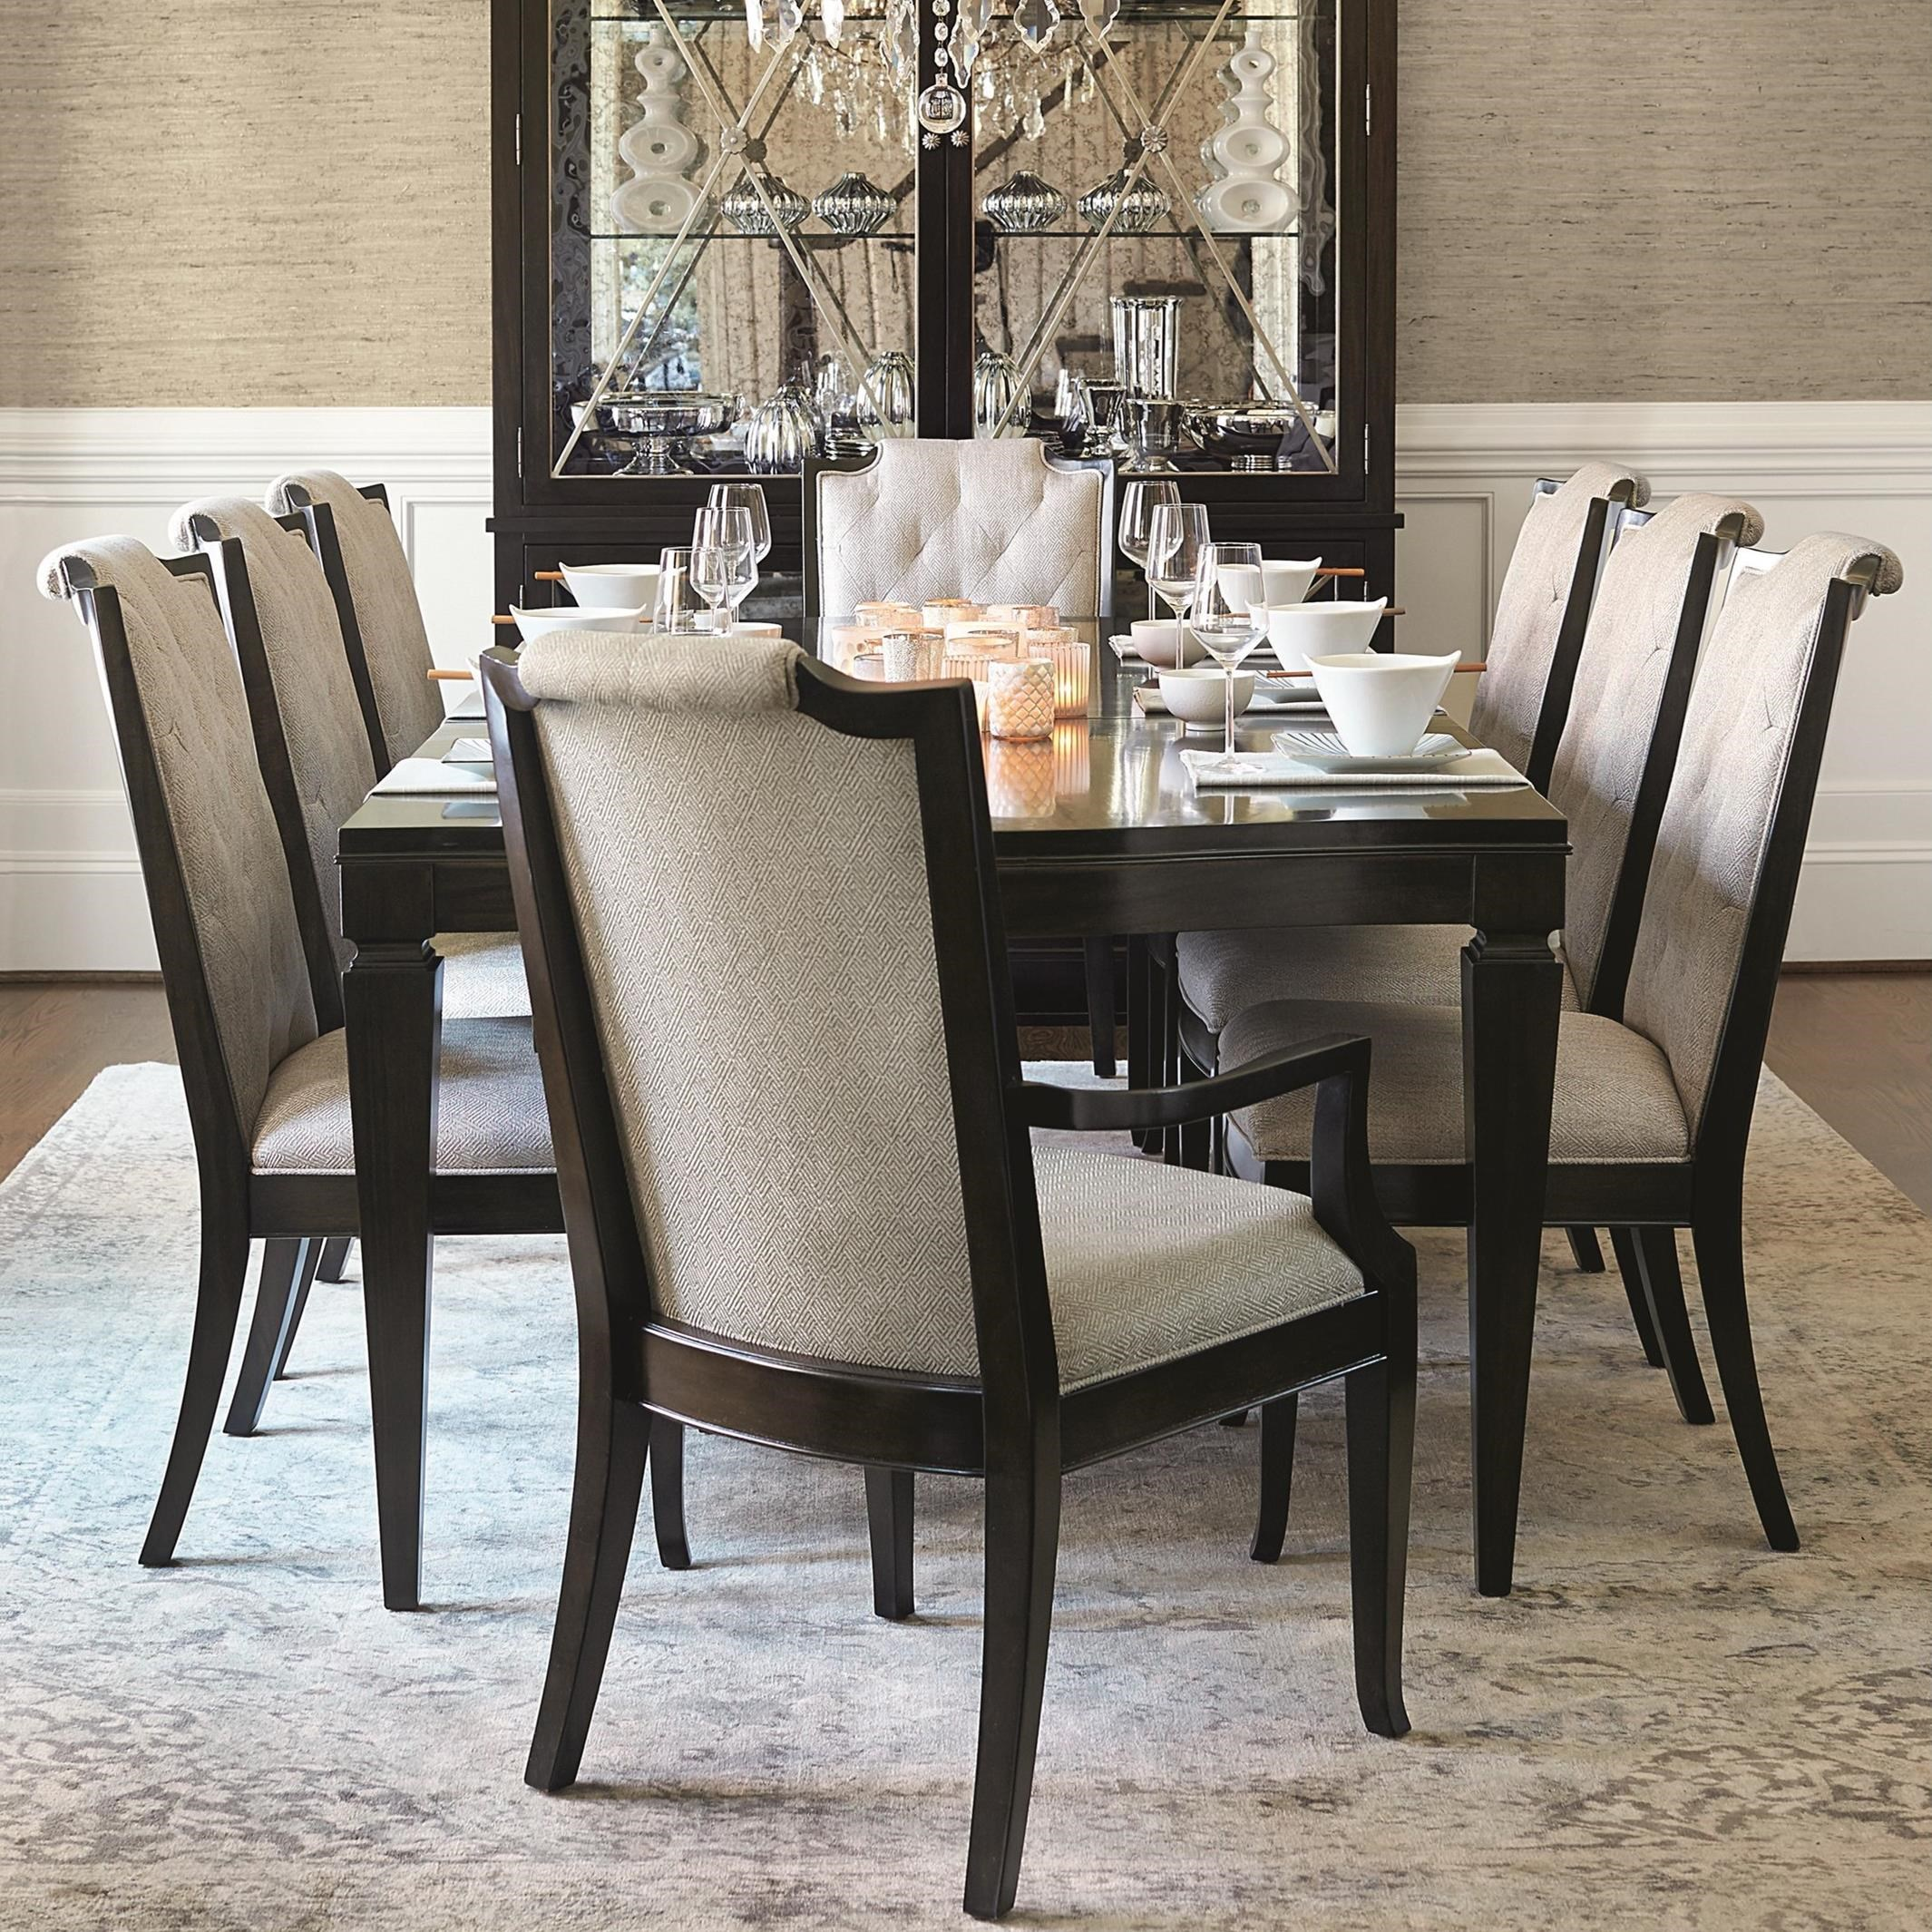 Bernhardt Sutton House 9 Piece Dining Set With Upholstered